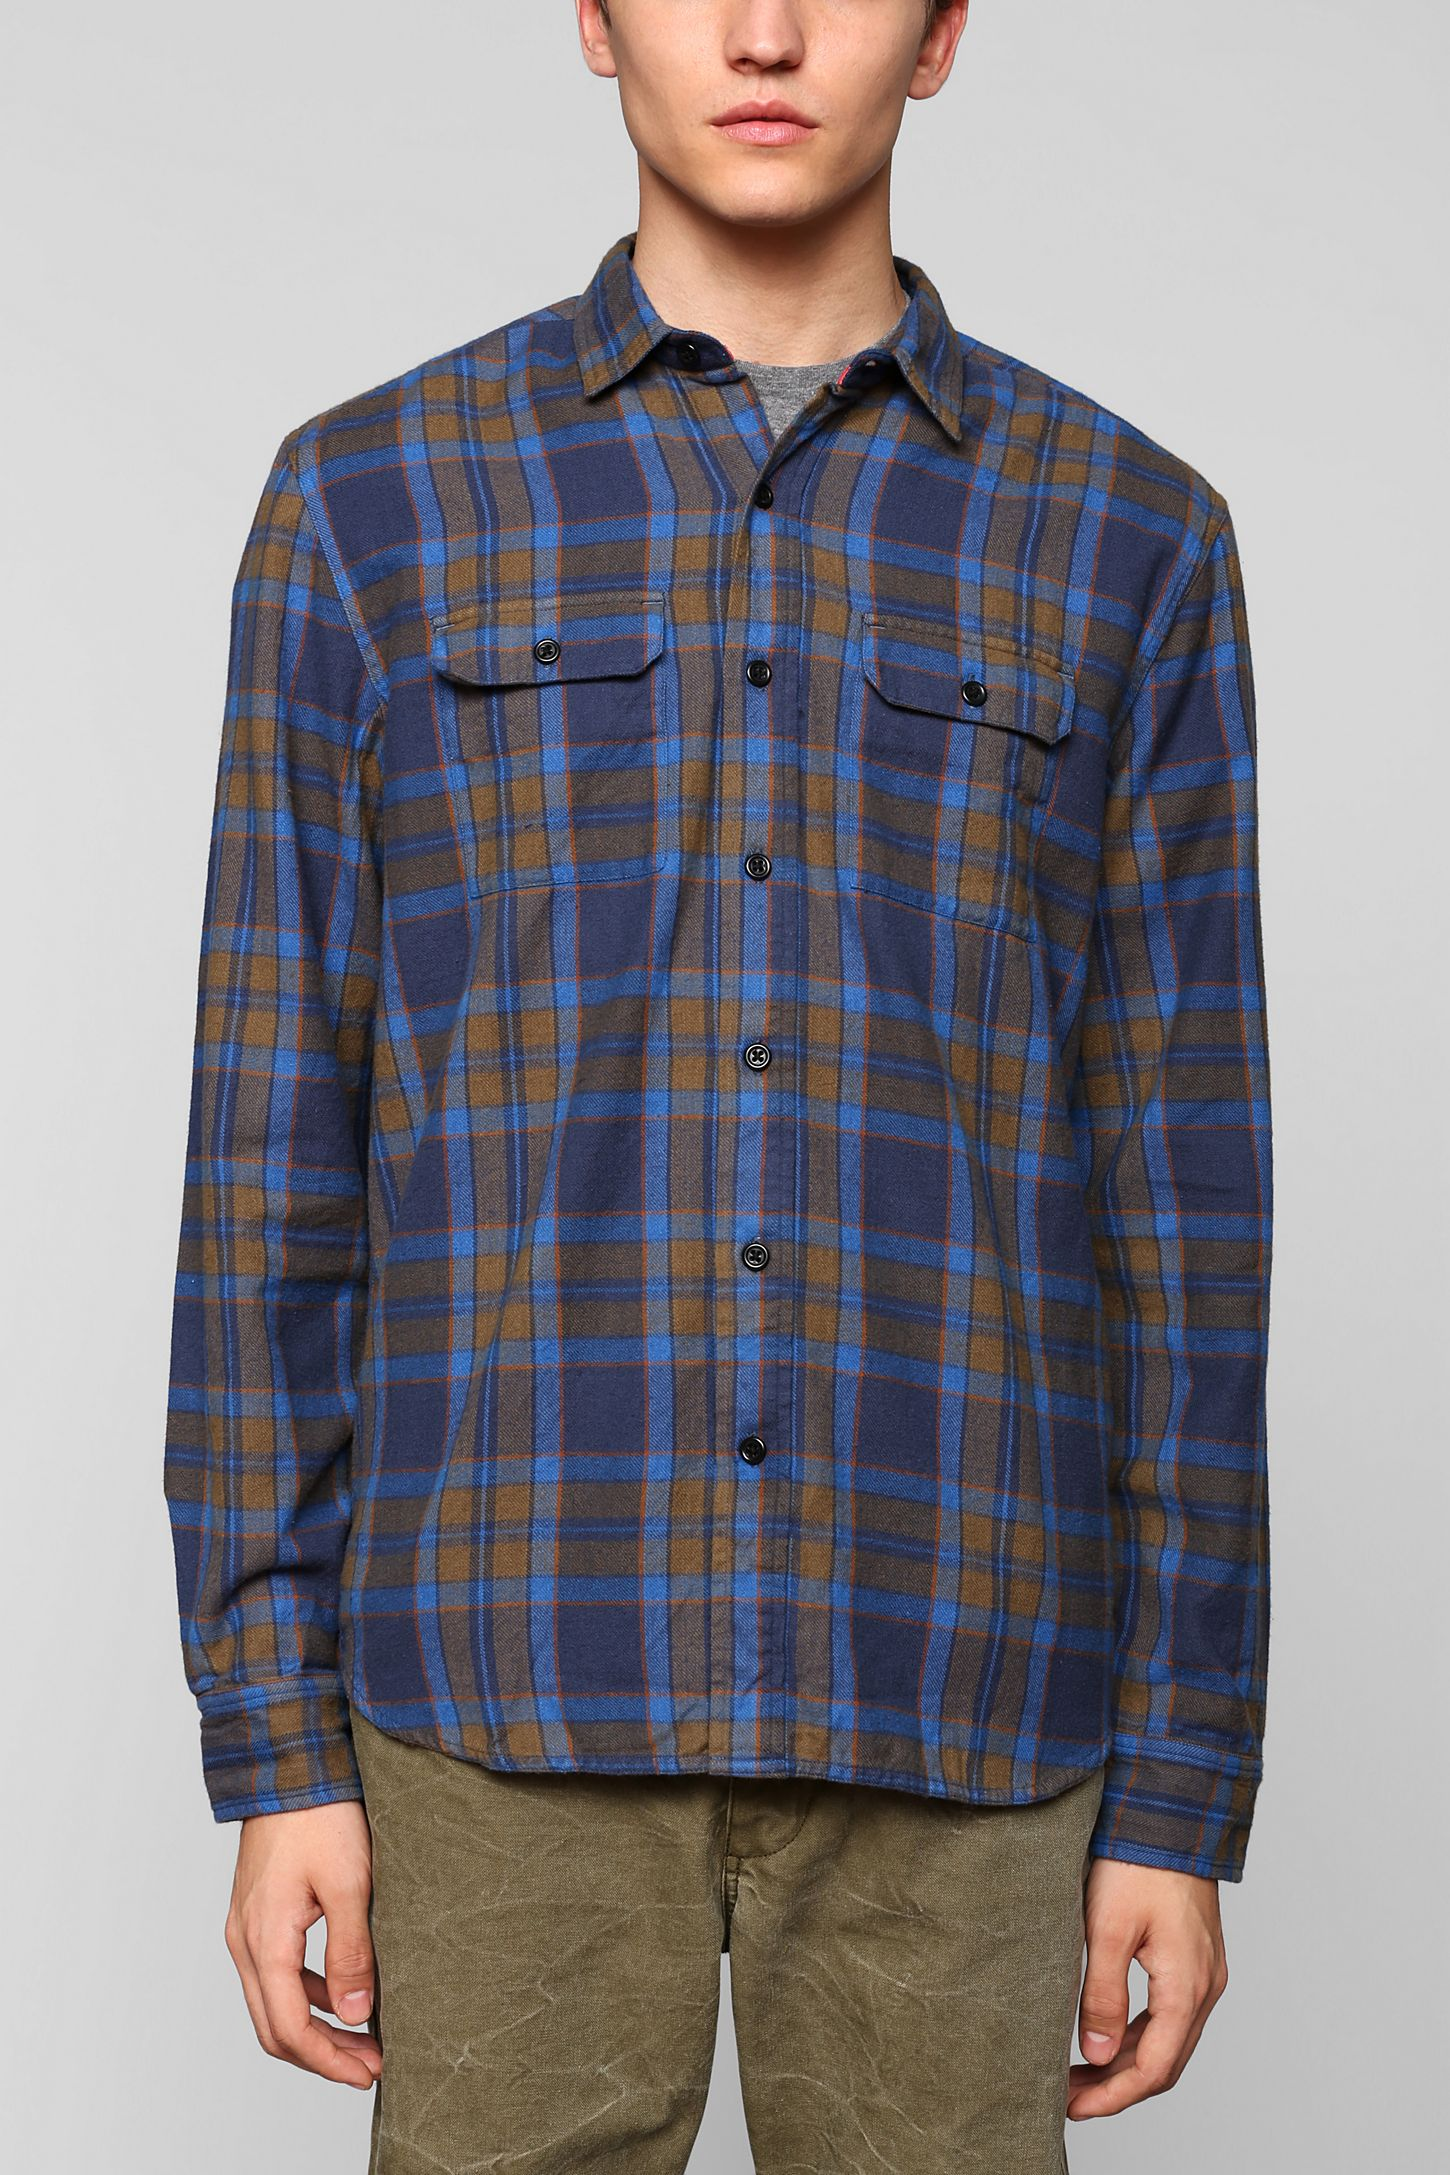 7f4dcb58676 Stapleford Printed Flannel Button Down Shirt – EDGE Engineering and ...